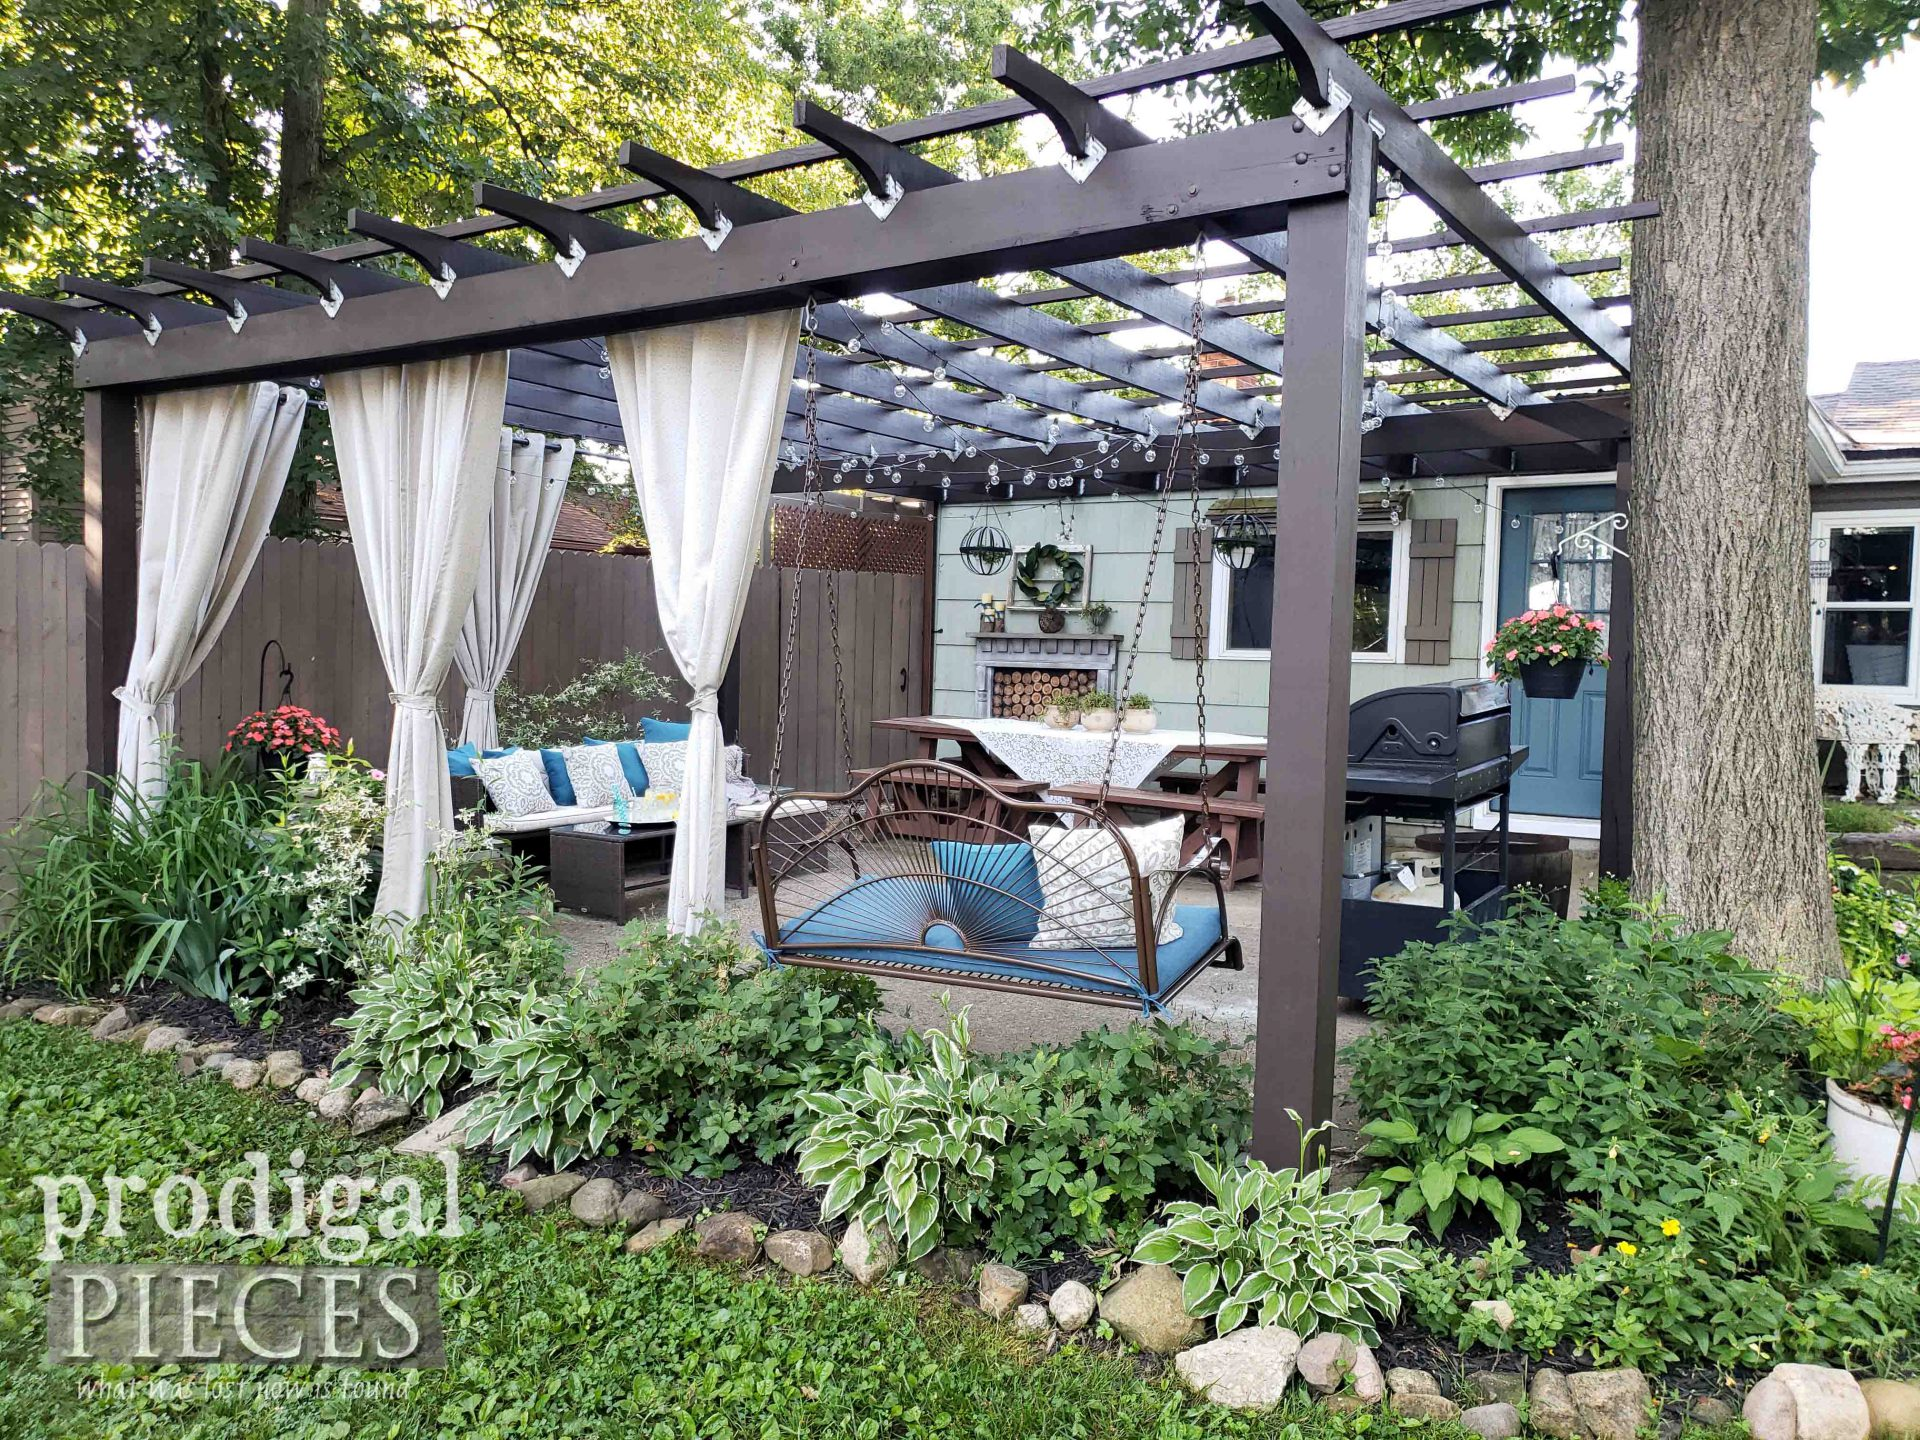 DIY Patio & Pergola Corner from Exterior | Update by Prodigal Pieces | prodigalpieces.com #prodigalpieces #patio #diy #home #homedecor